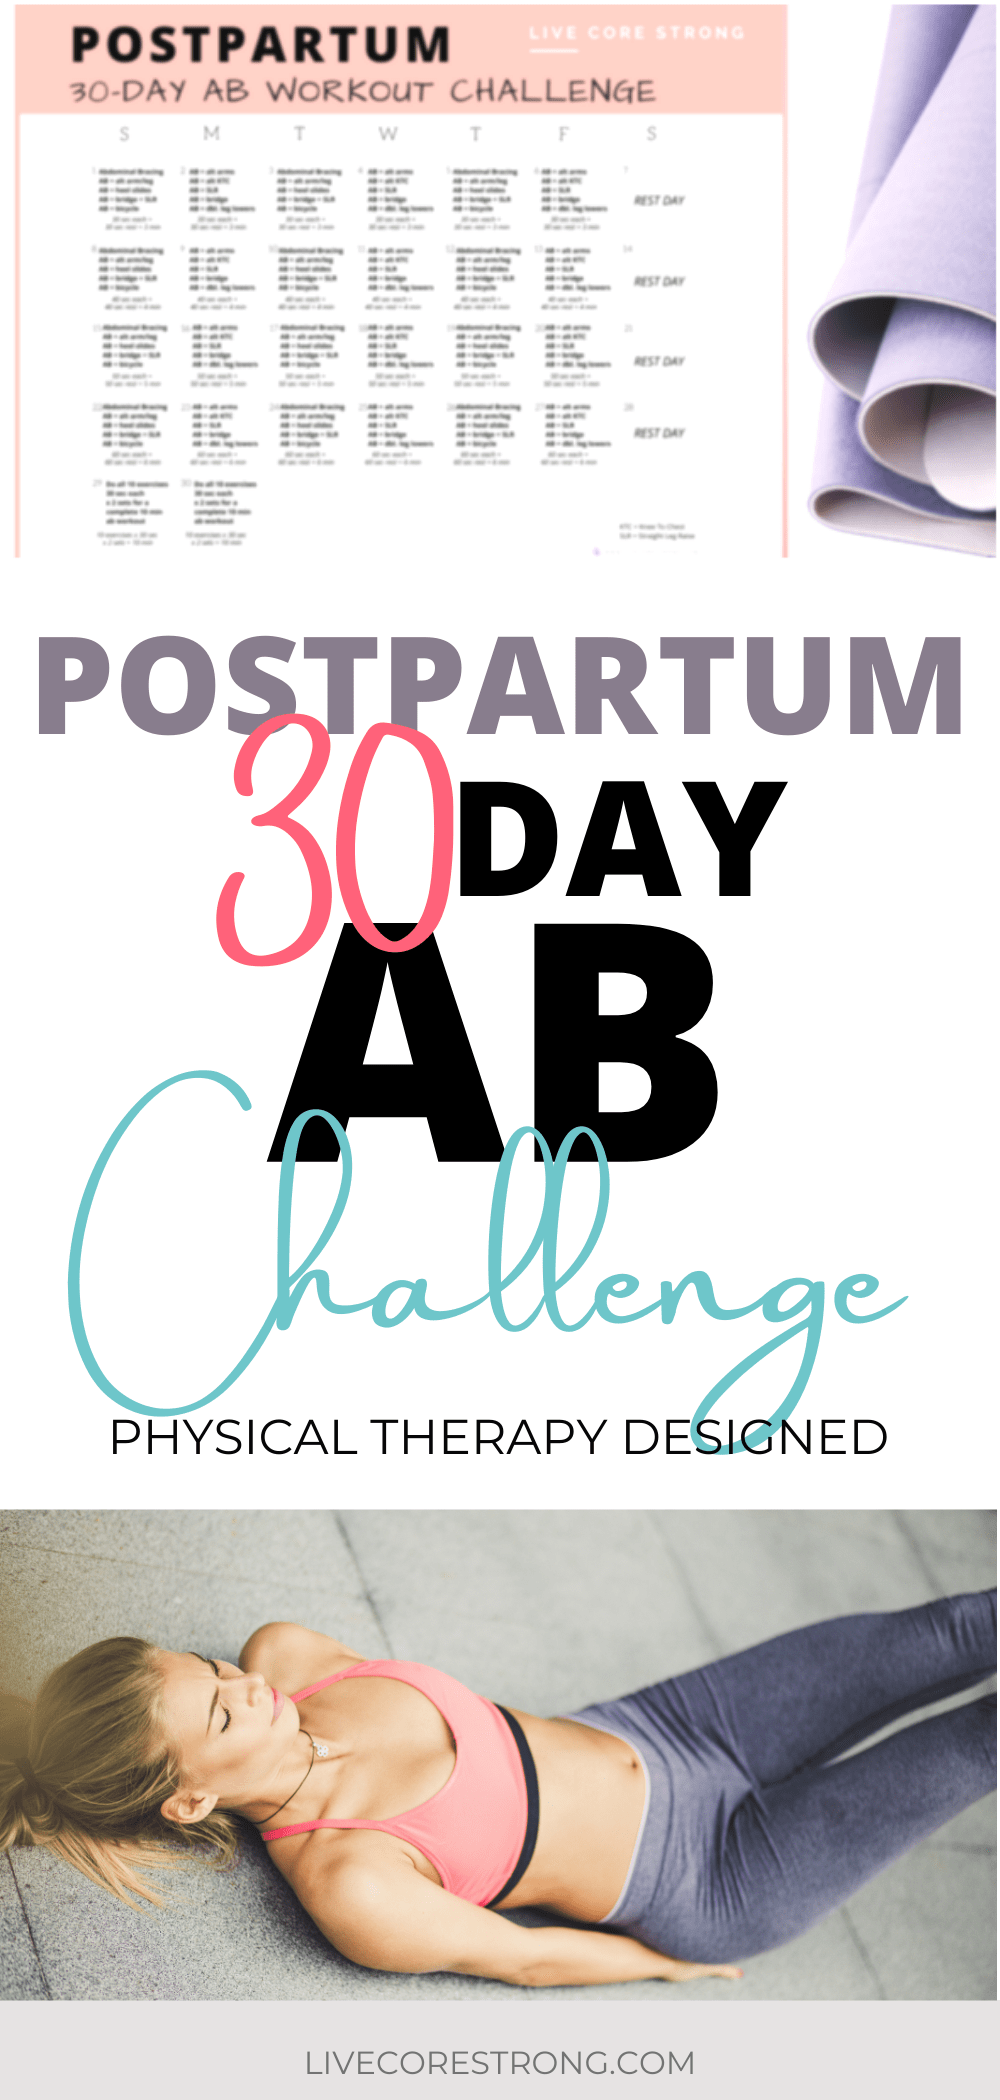 Join the FREE 30-Day Ab Challenge for Women